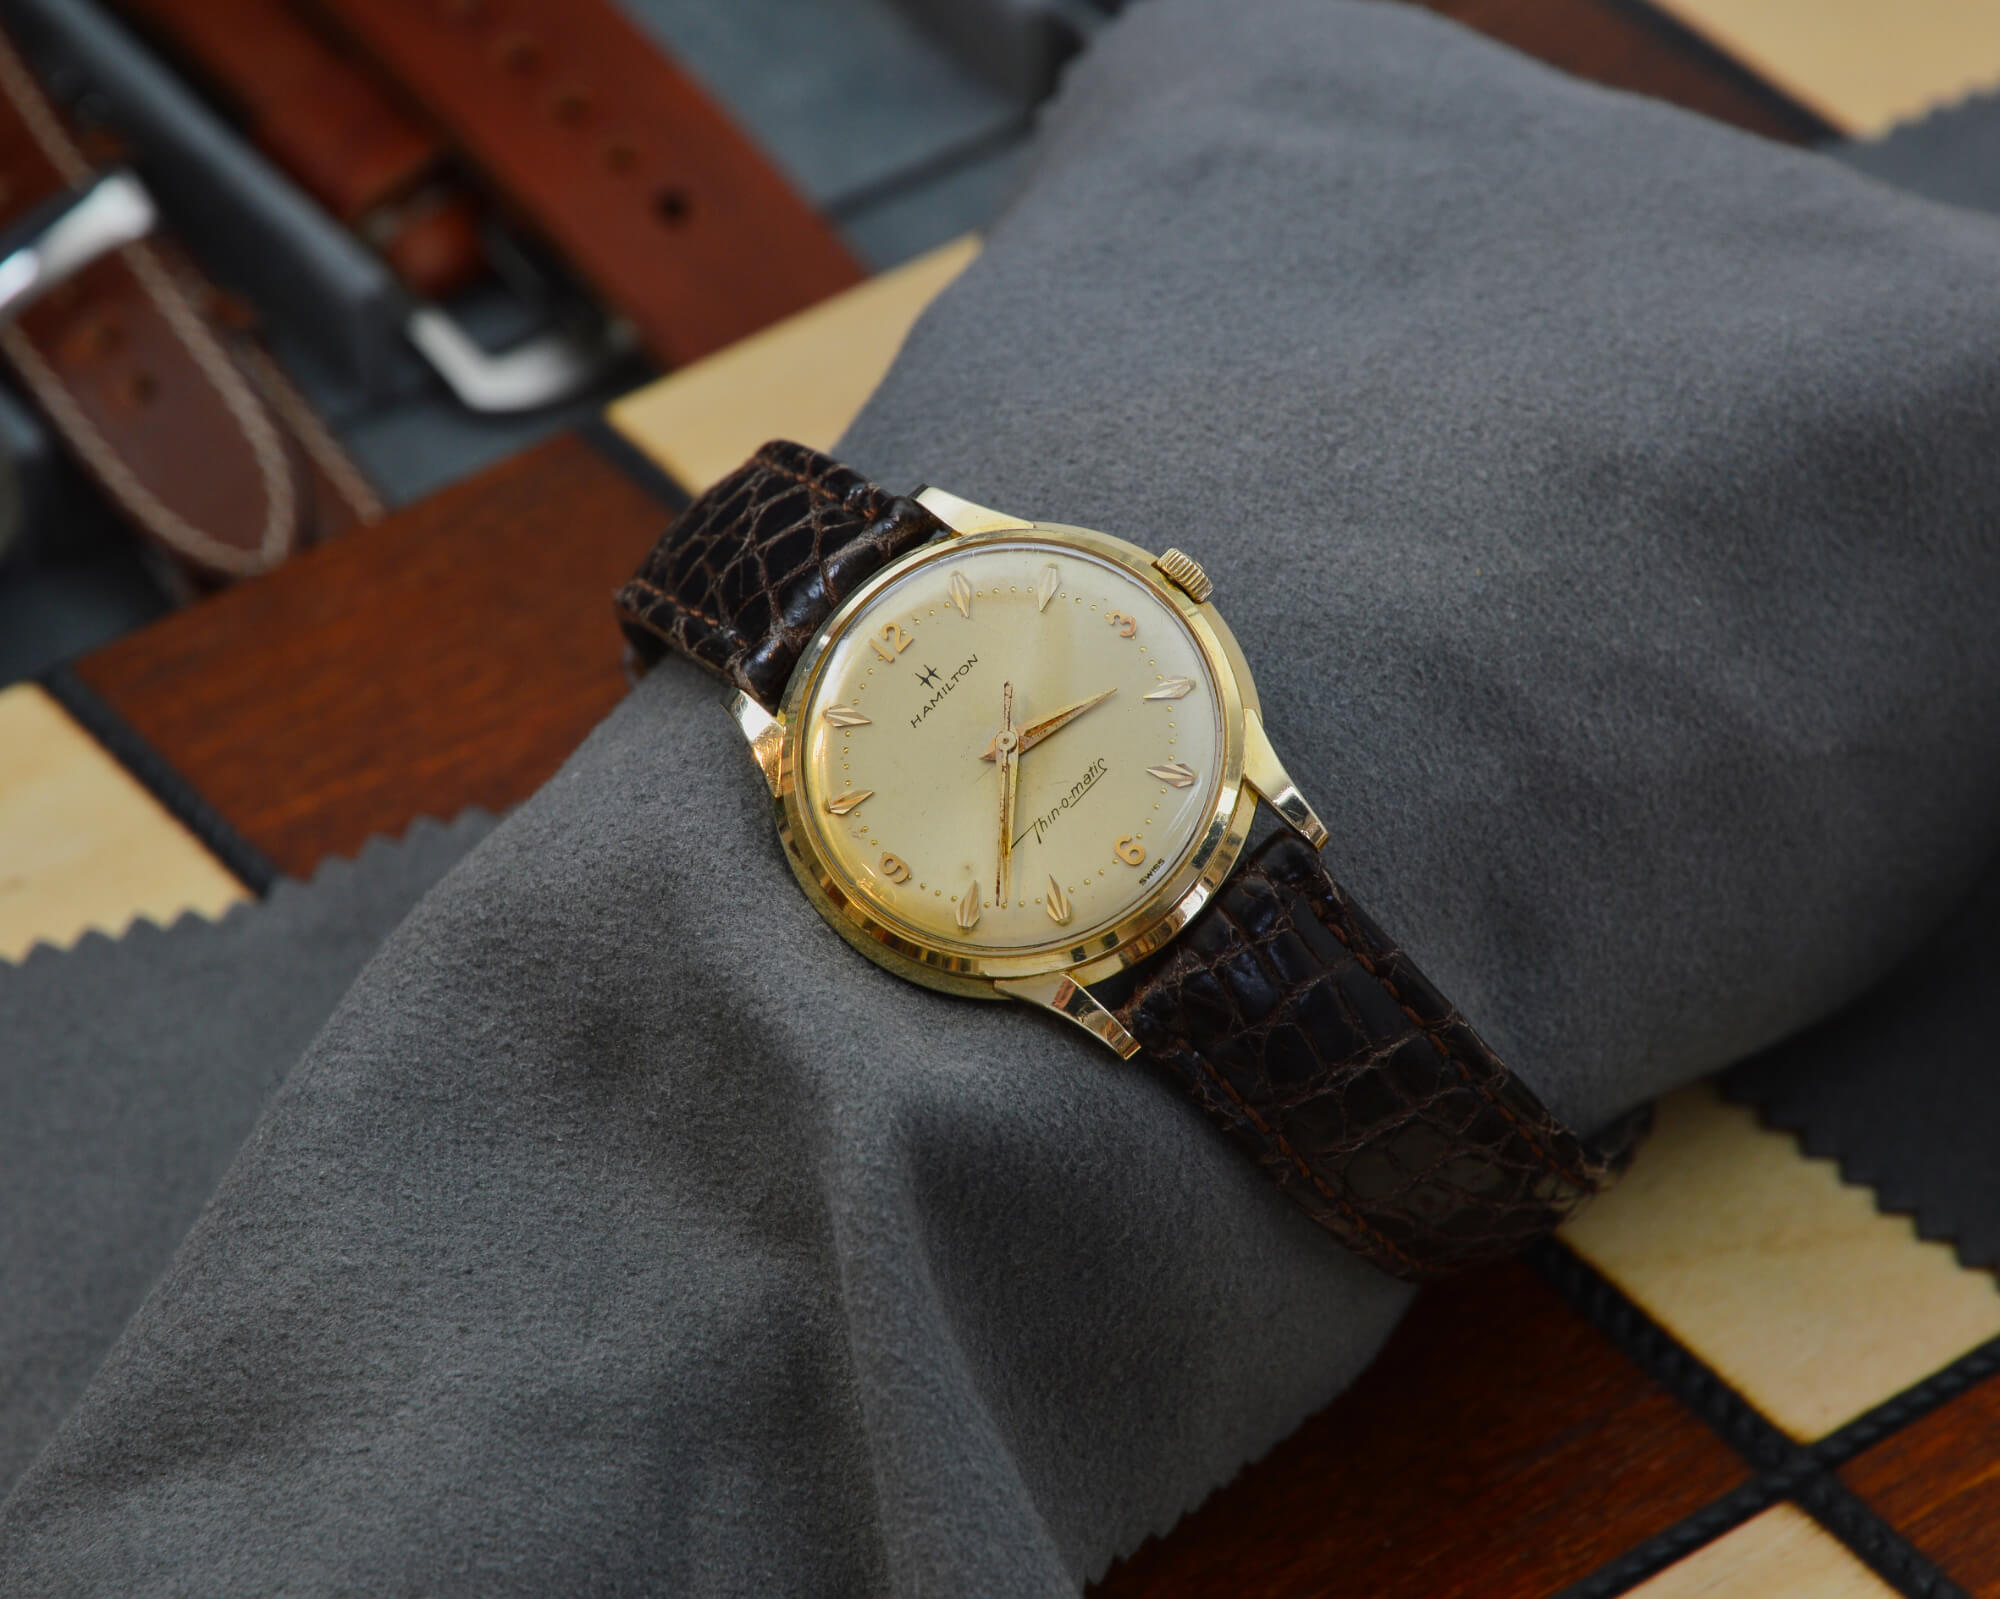 buying-gold-watches-tips-16